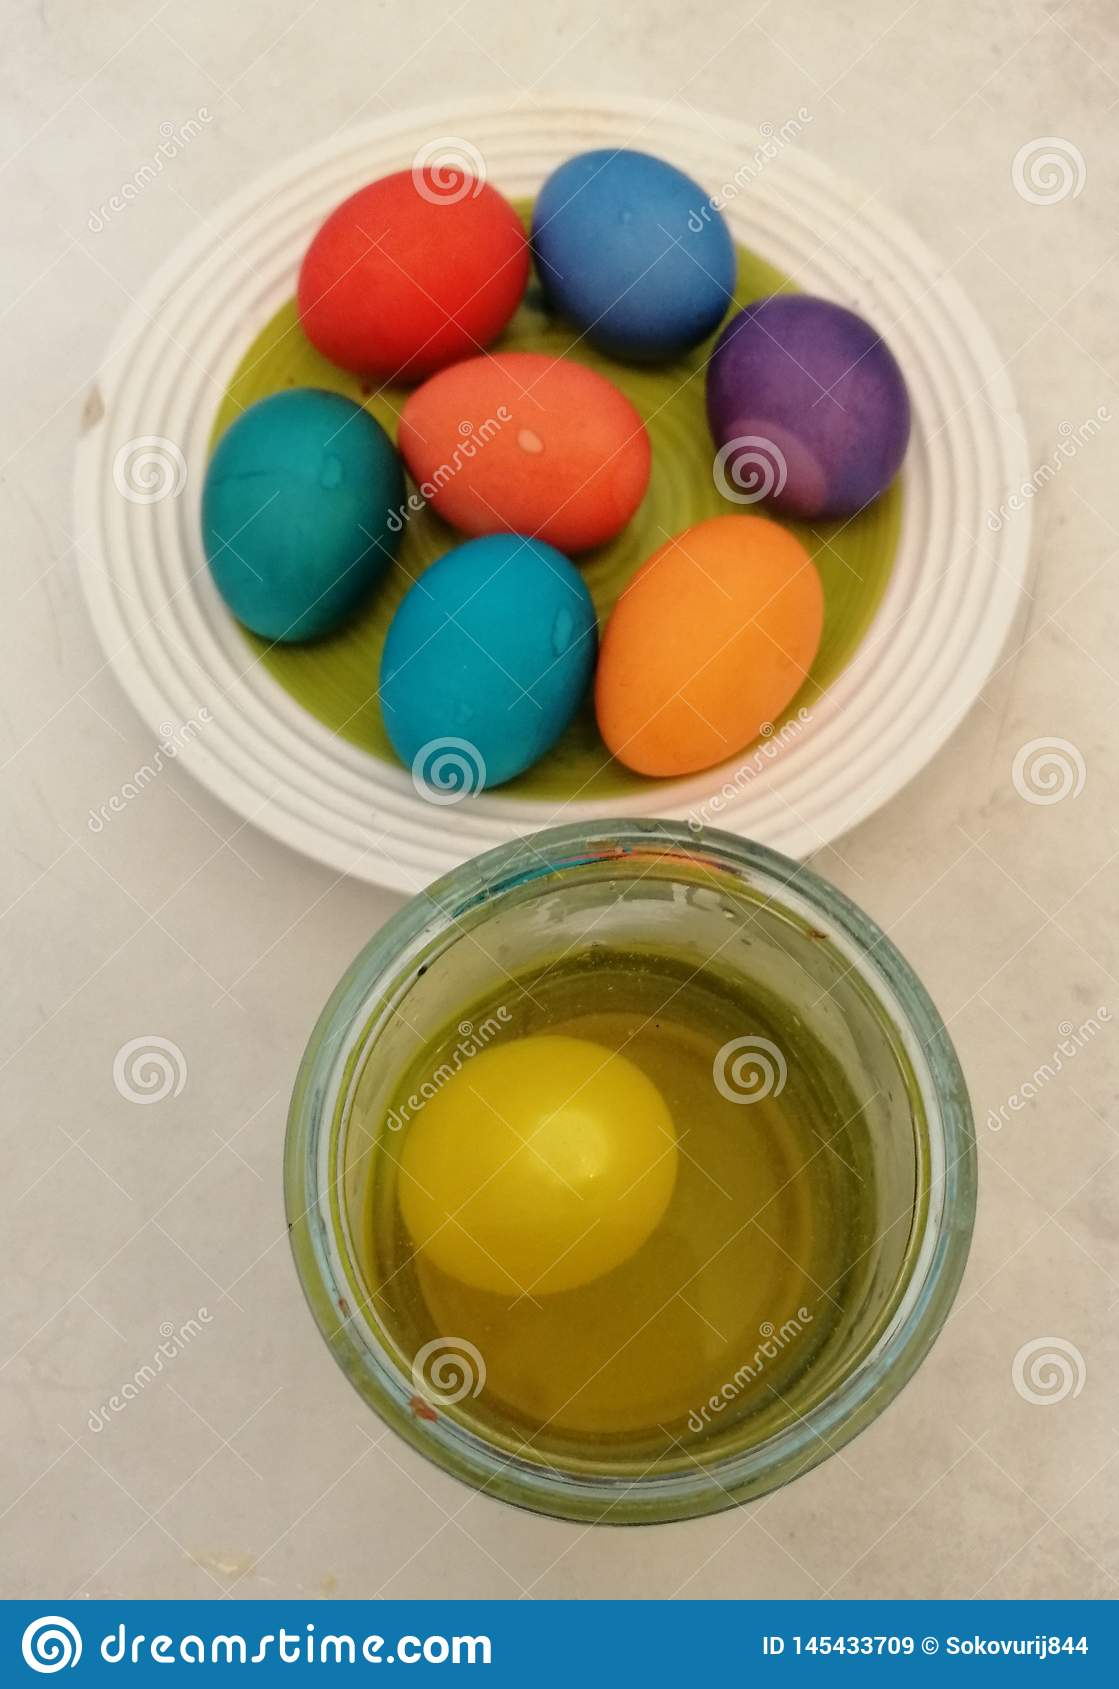 Coloring of Easter eggs